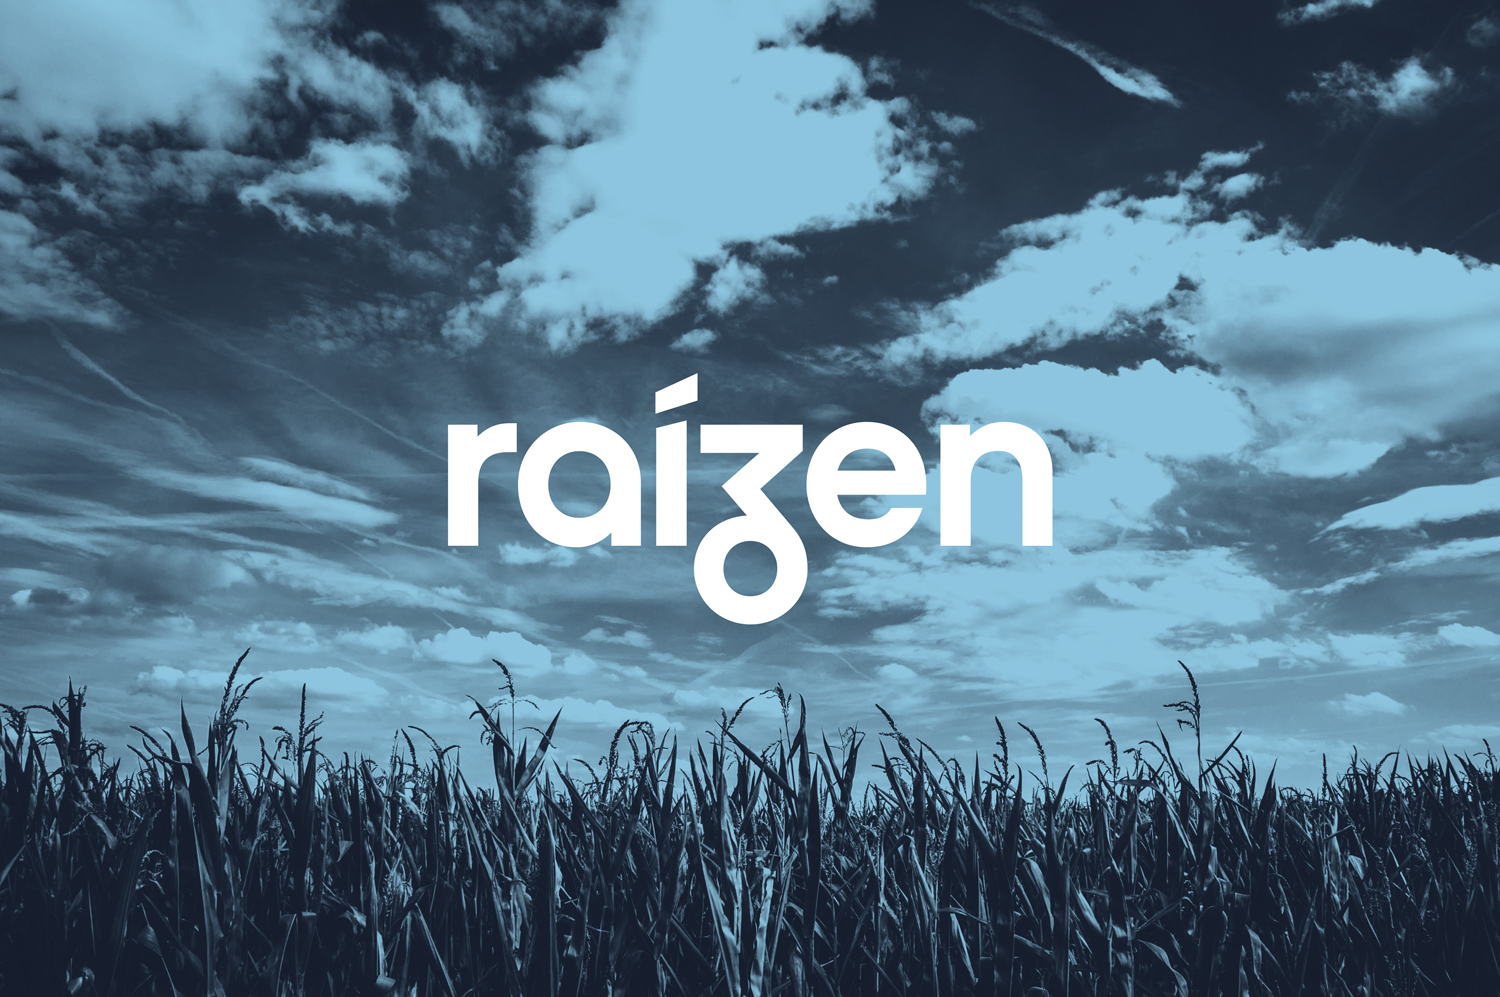 Raizen - Over the last four years our partnership with Raízen Energia has been focused on developing and operating industrial scale machine learning and computer vision platforms for operational planning, optimization and risk management of 800.000 hectares of sugarcane.